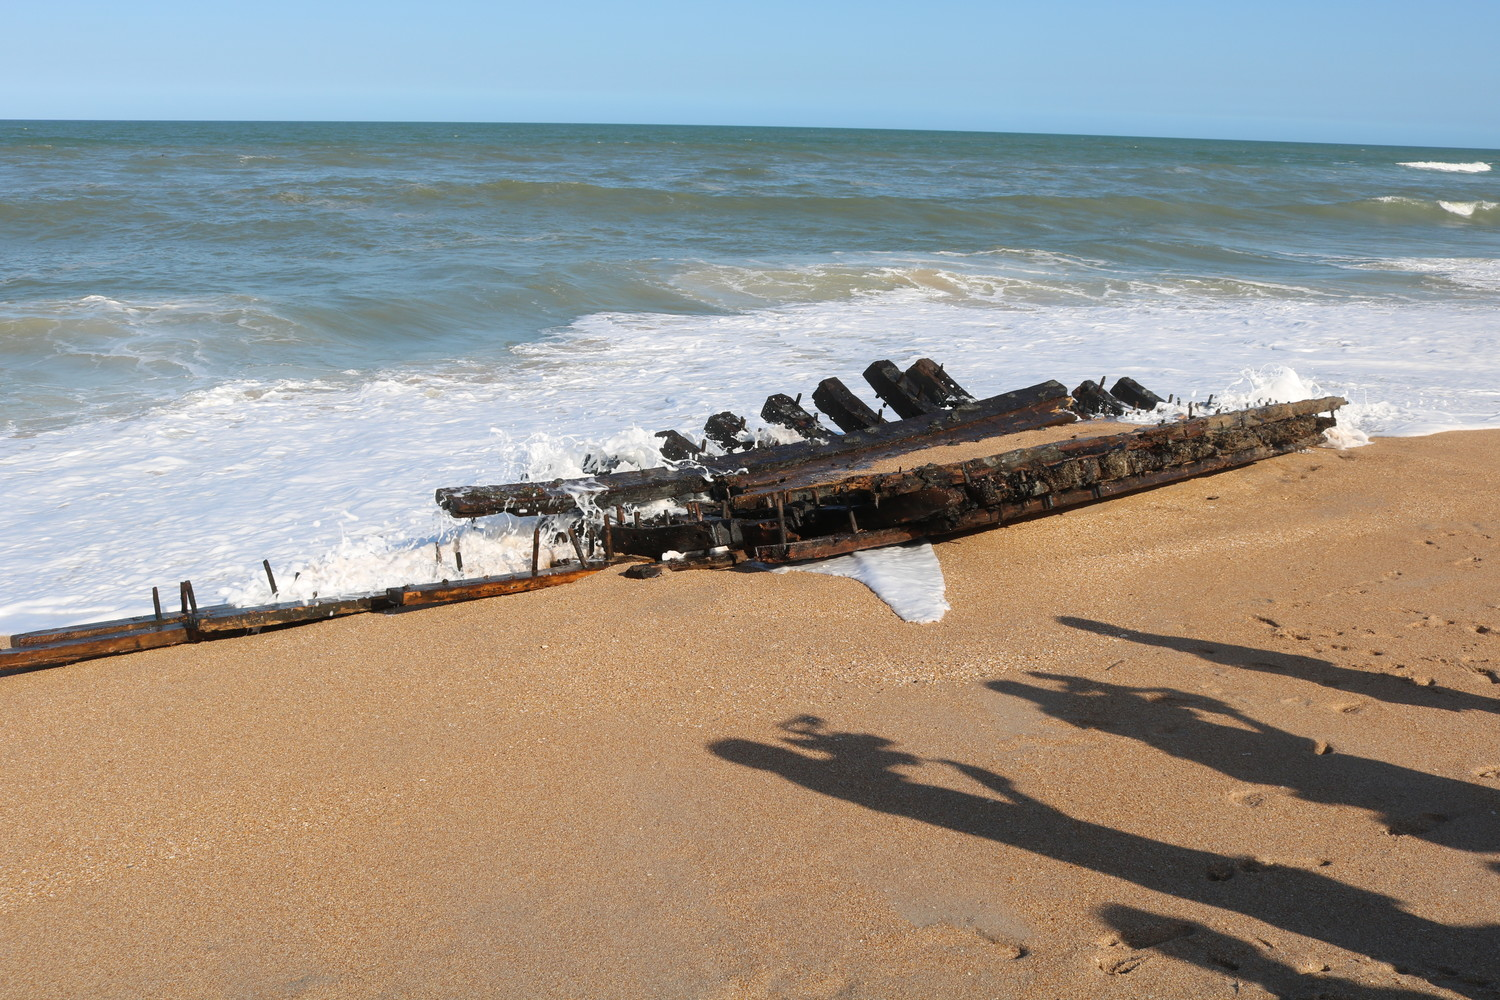 Local archaeology experts say the hull from what is likely a 19th century wooden ship washed ashore in South Ponte Vedra Beach on Wednesday morning.